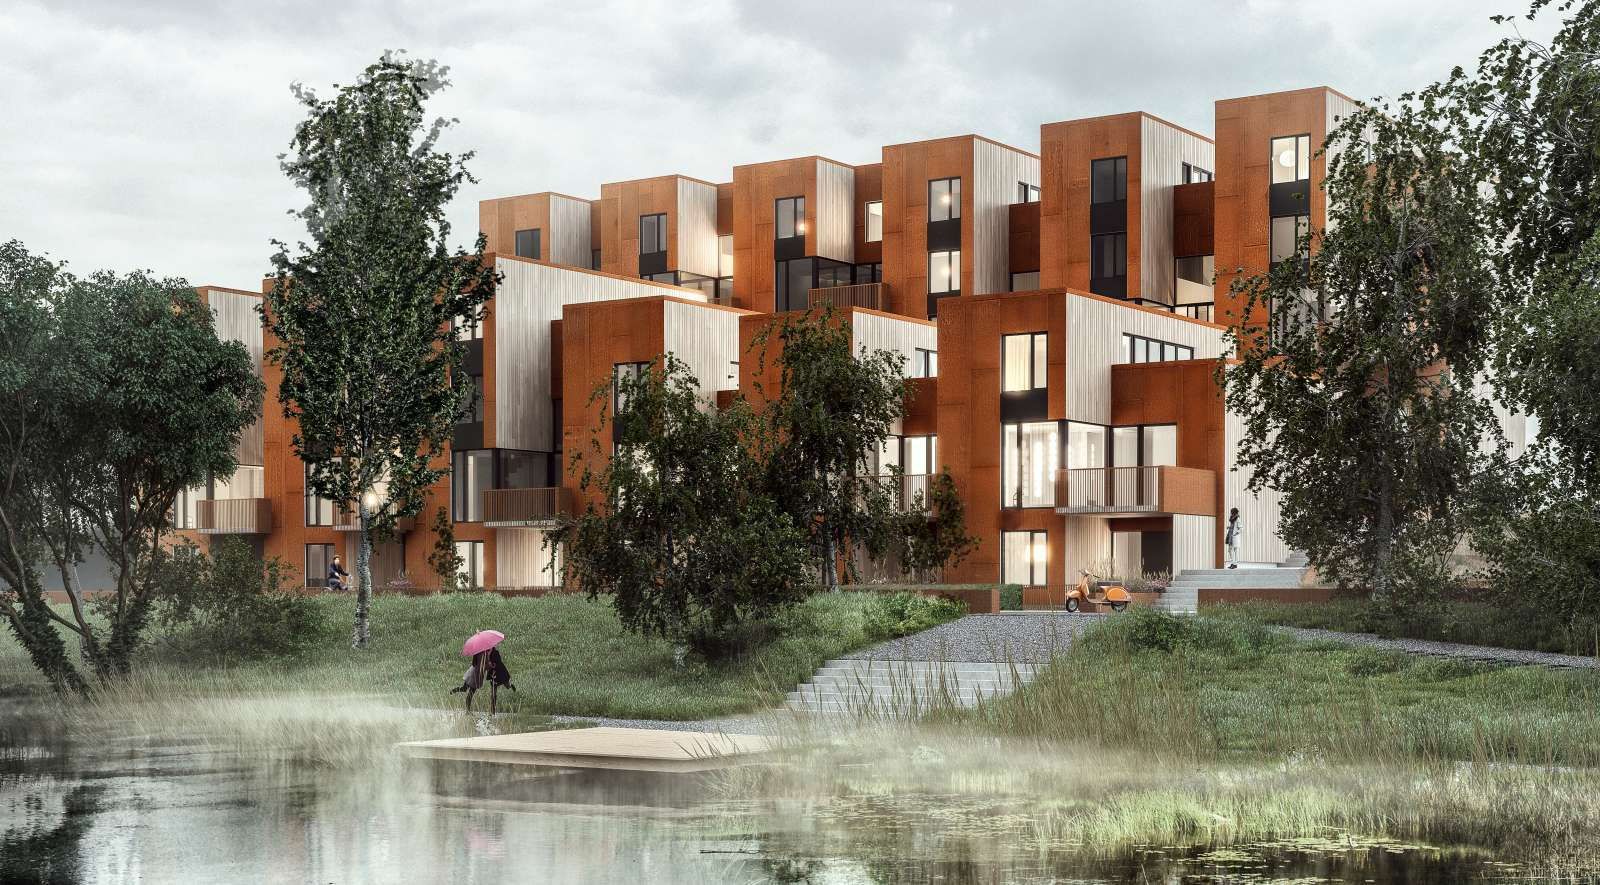 Zenhusen sustainable town houses by c f m ller architects for Architecture design for home in village